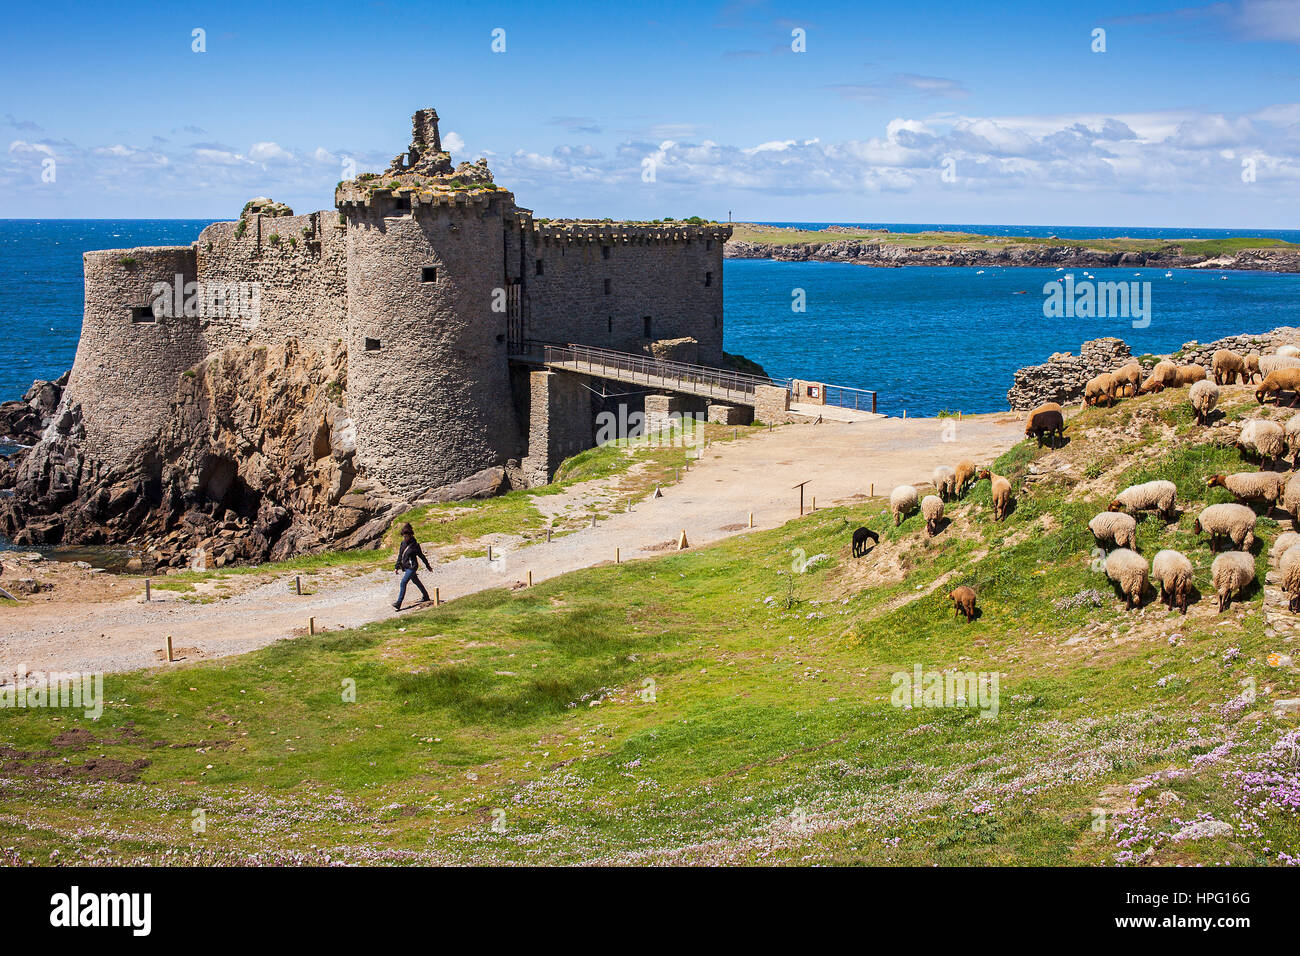 the old castle ile d 39 yeu vendee france stock photo royalty free image 134347208 alamy. Black Bedroom Furniture Sets. Home Design Ideas